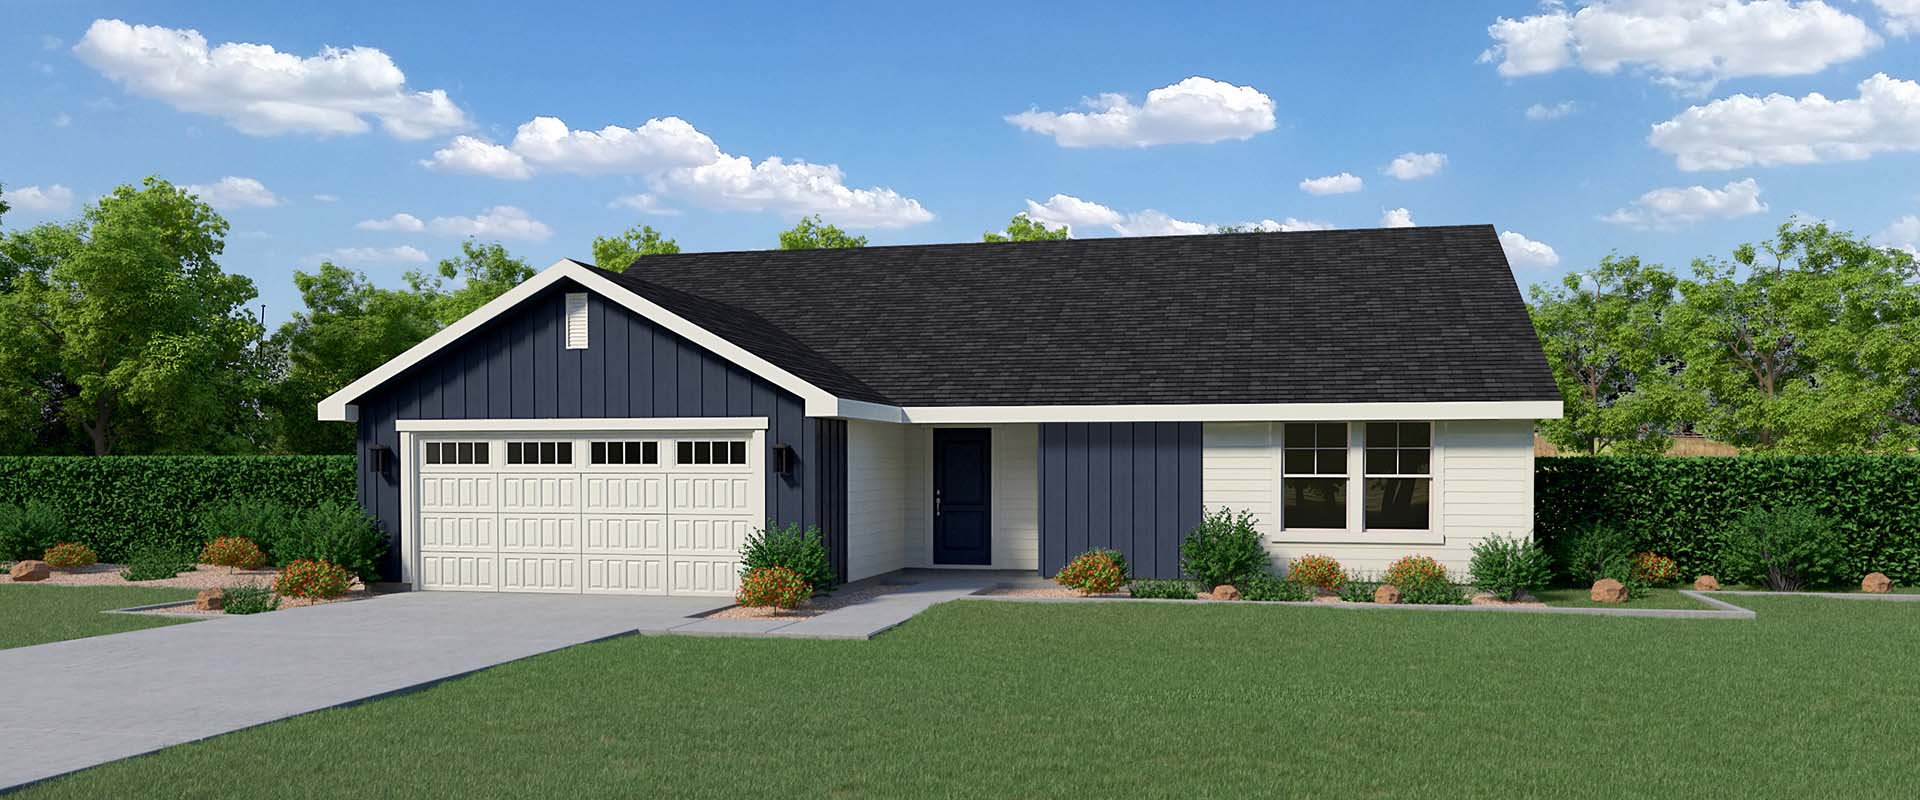 new-homes-boise-idaho-hubble-homes_0013_Sapphire Traditional pack 34.jpg